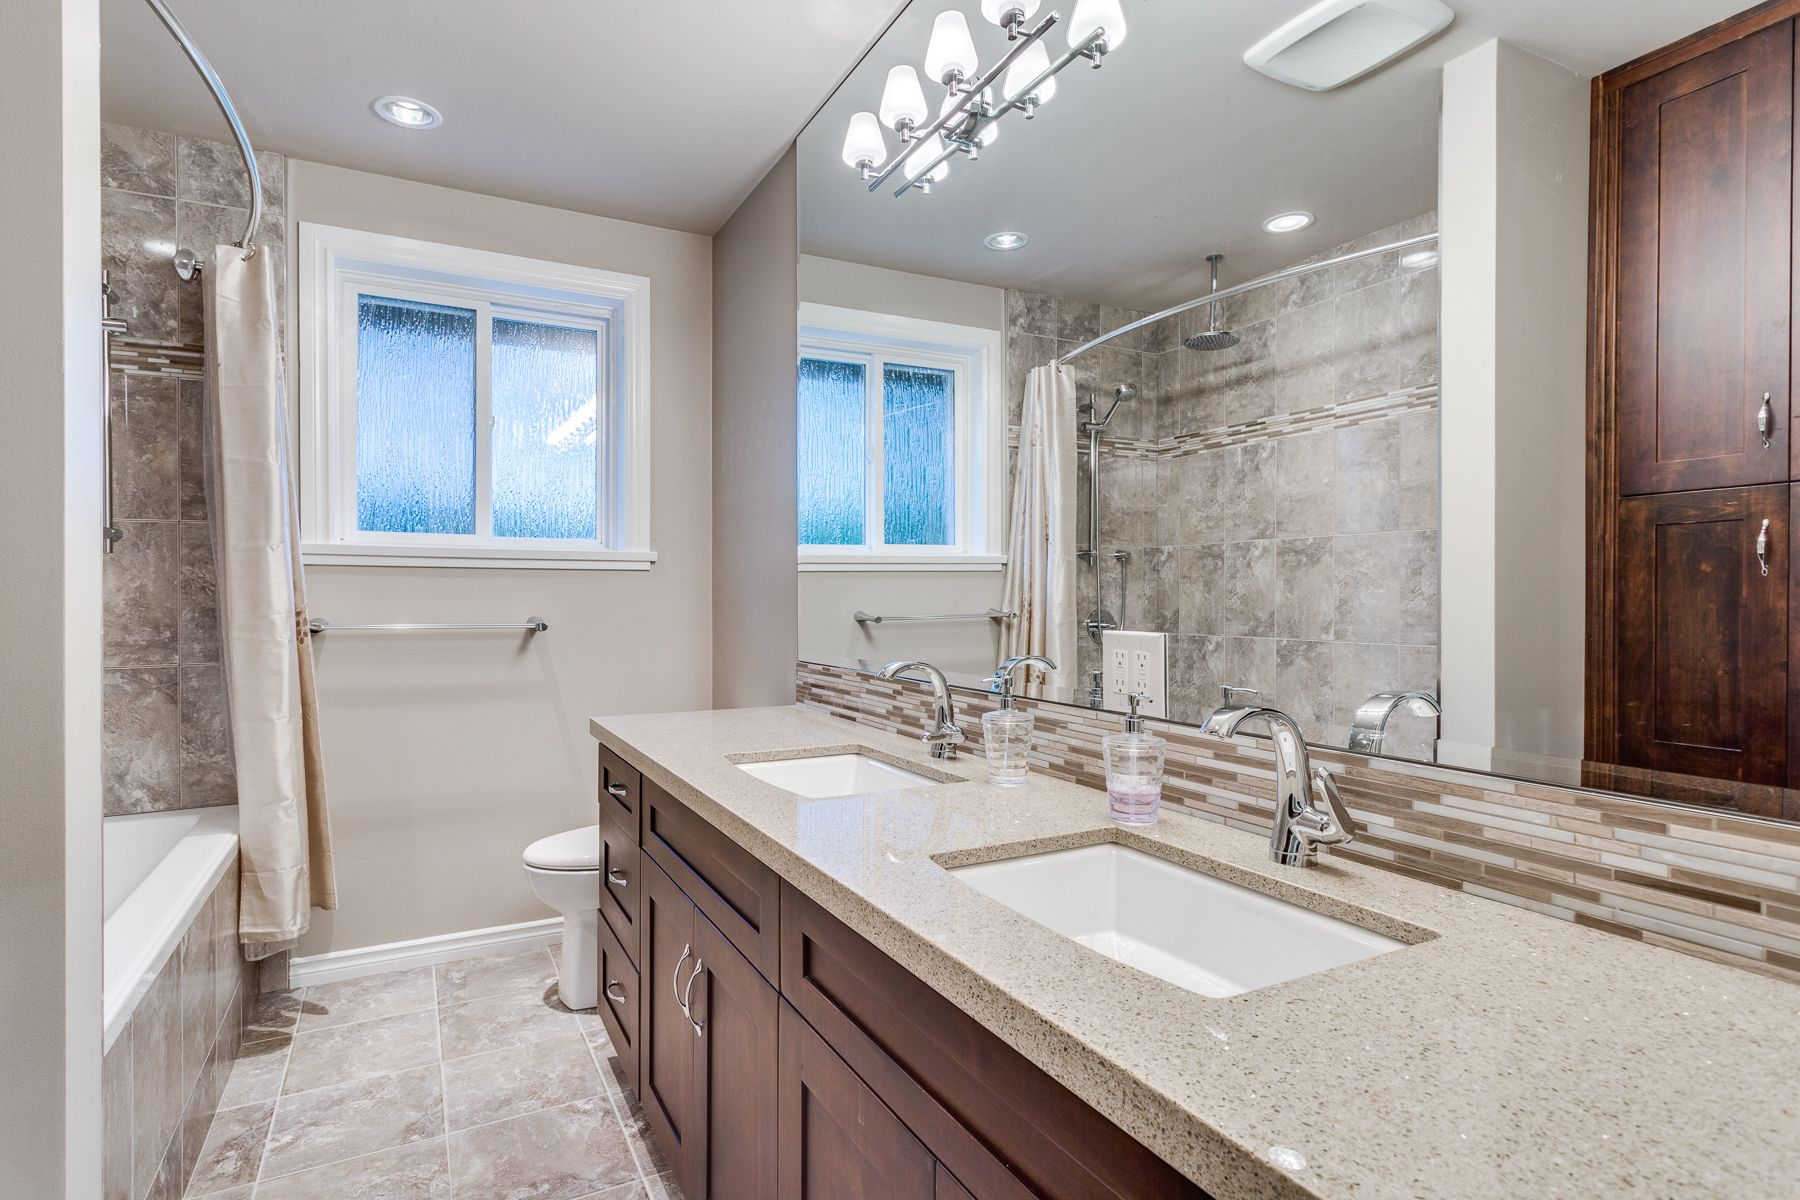 What Does Average Bathroom Remodel Cost In 2020 Bathroom Remodel Cost Average Bathroom Remodel Cost Simple Bathroom